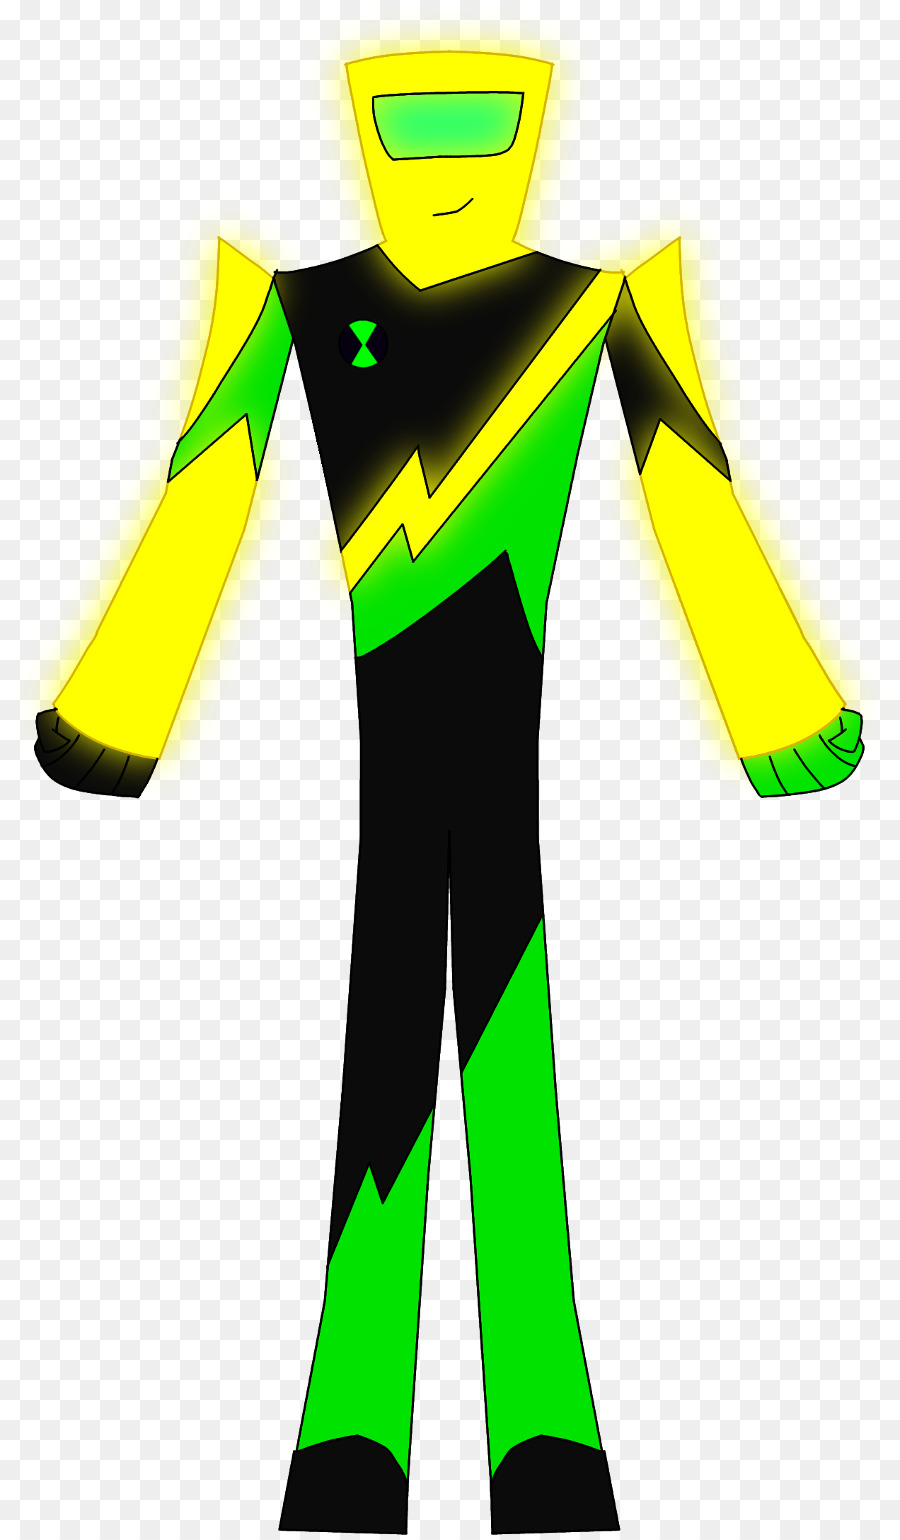 900x1540 Clothing Yellow Green Sleeve Wetsuit